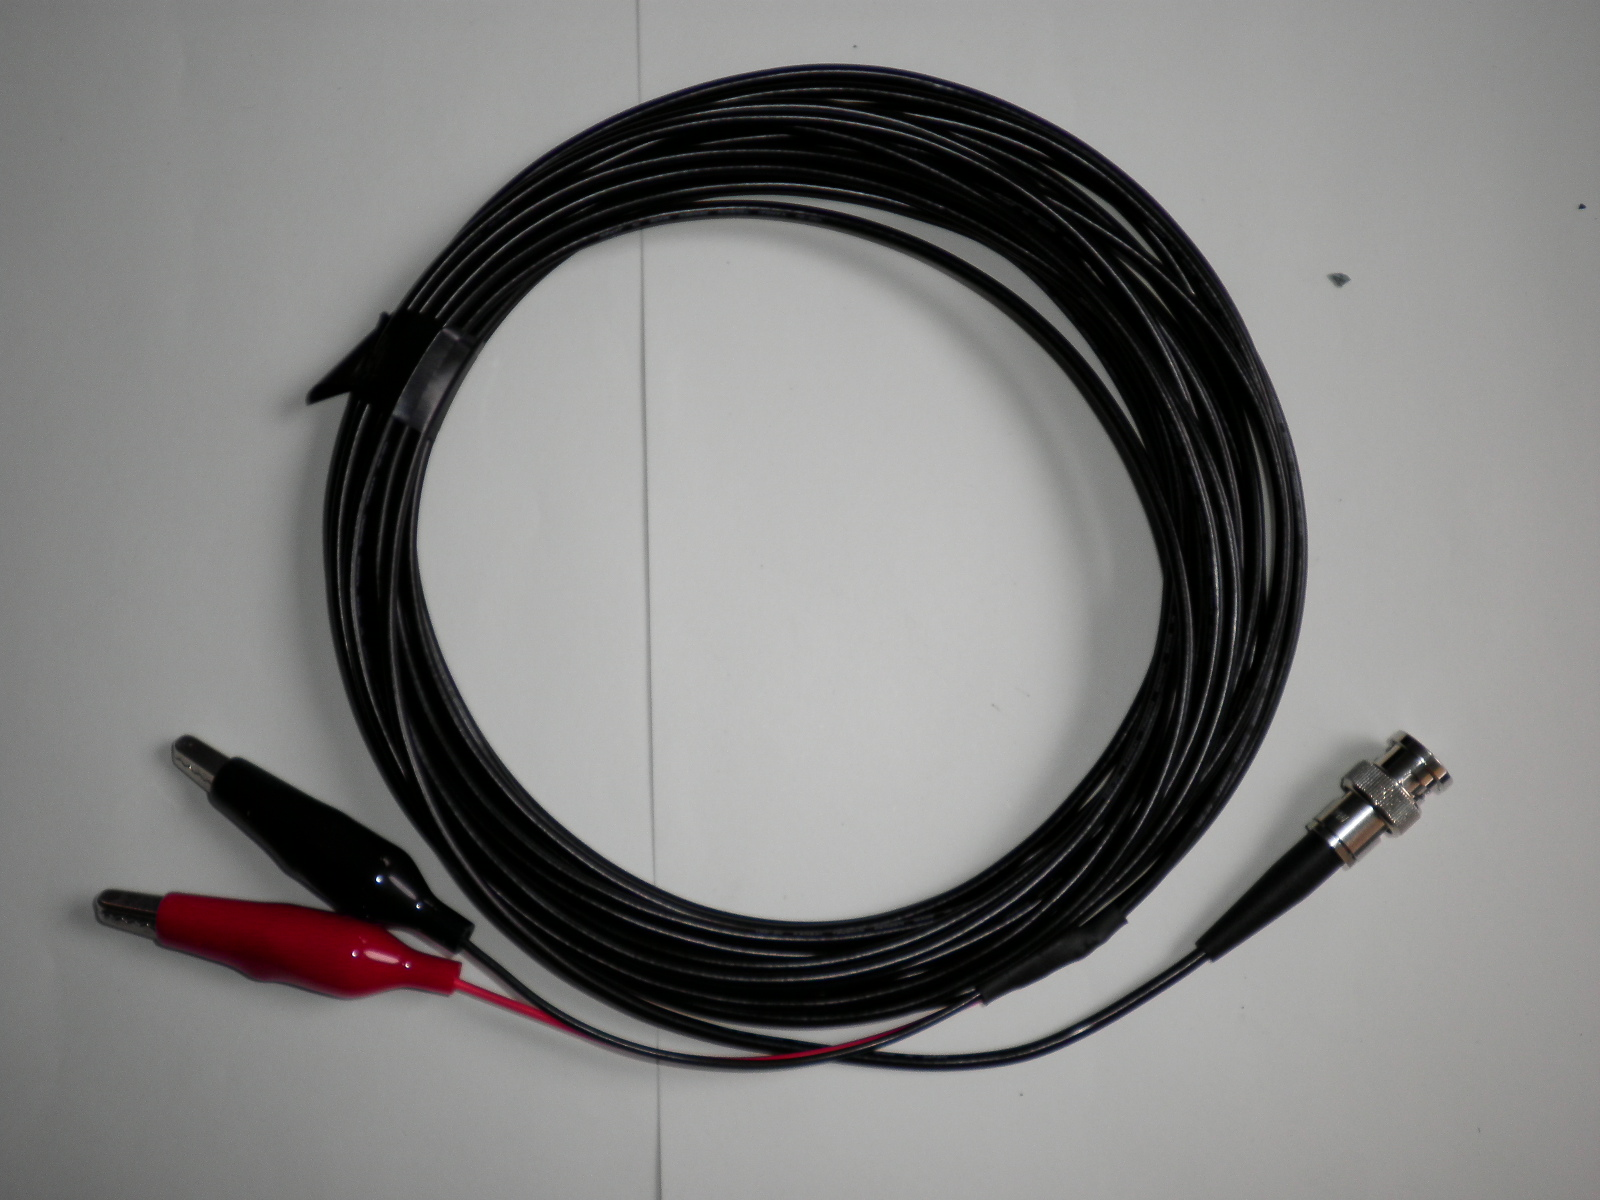 http://www.cable-harness-ex.com/case/SANY0022.JPG